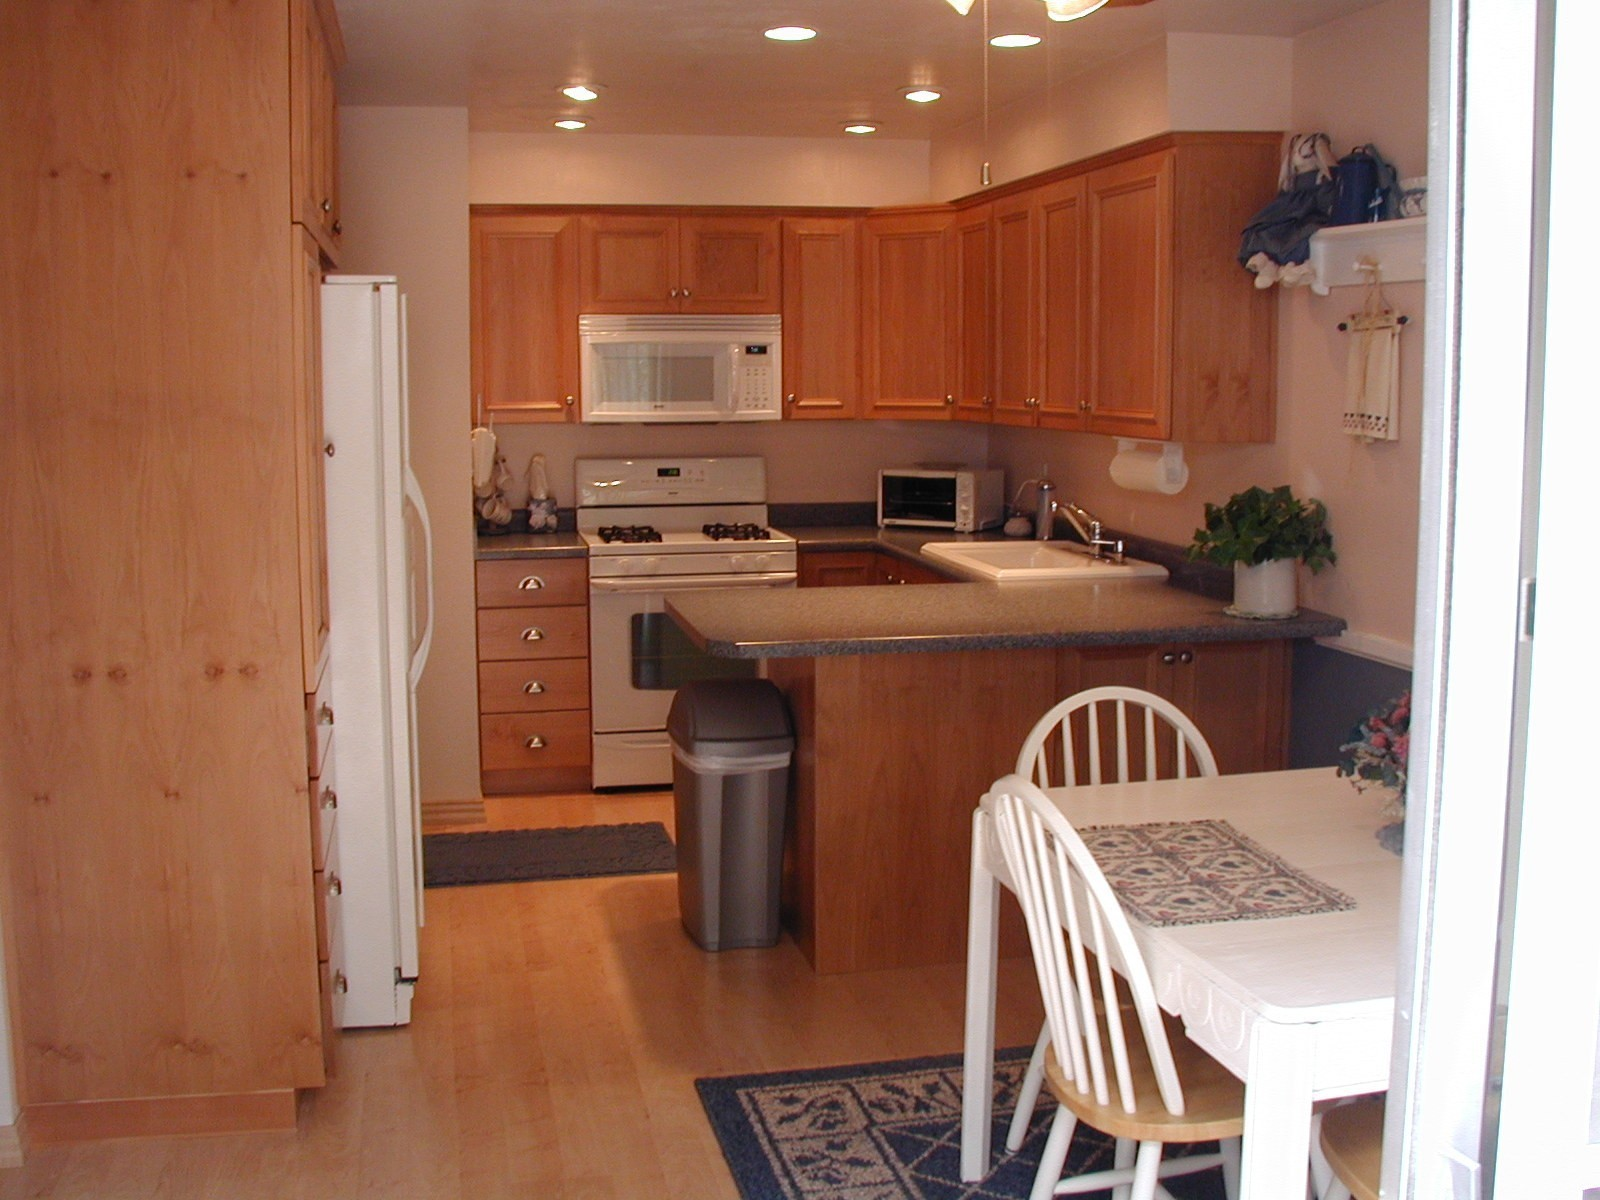 Lighting In Kitchen With No Island floor Paneling